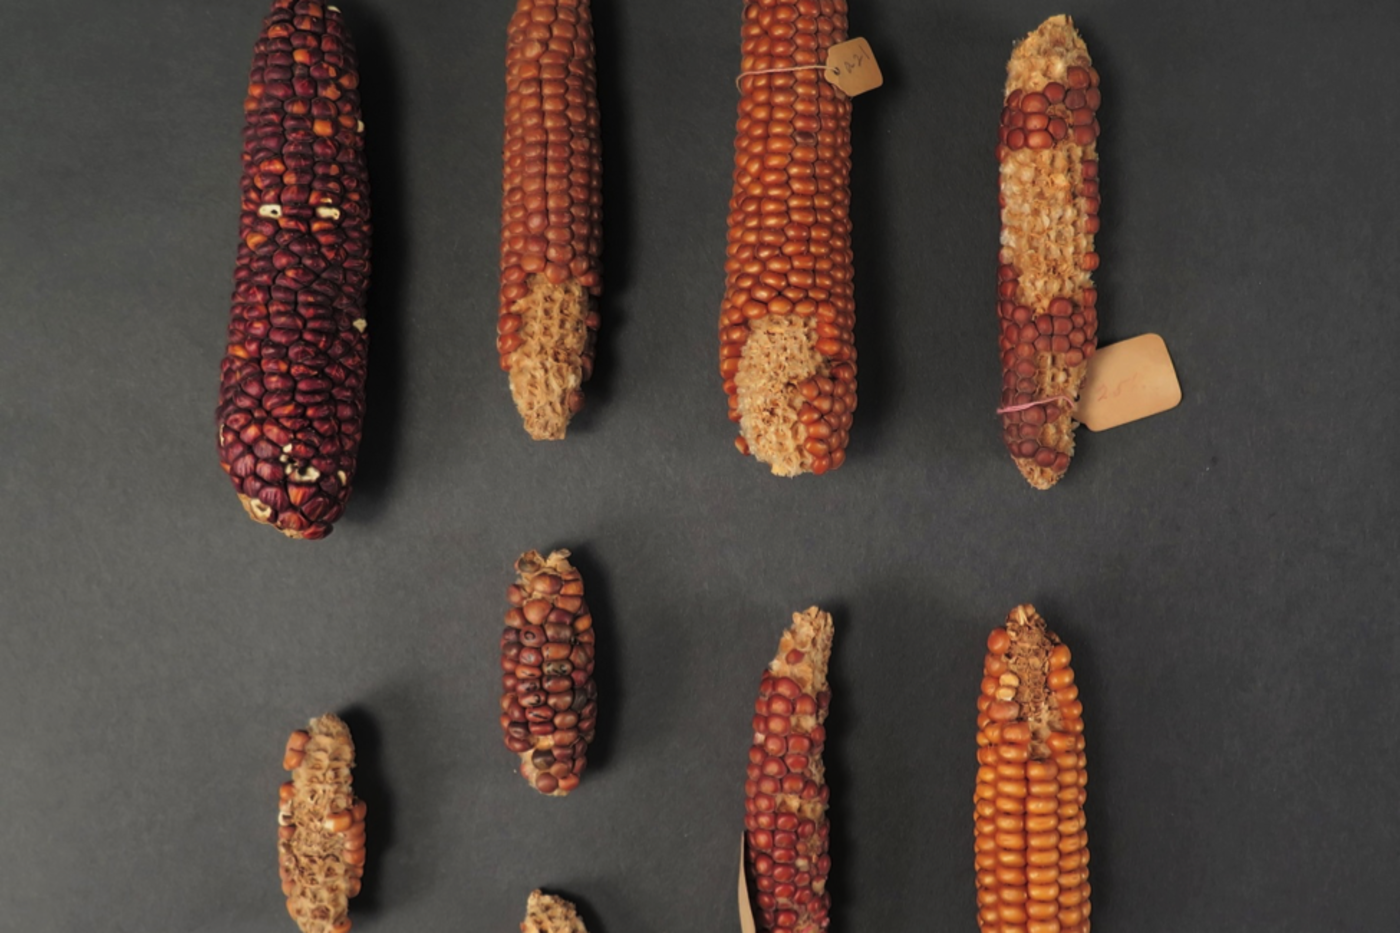 Two rows of dried corn cobs of different sizes and colors, including yellow, orange, brown, and purple